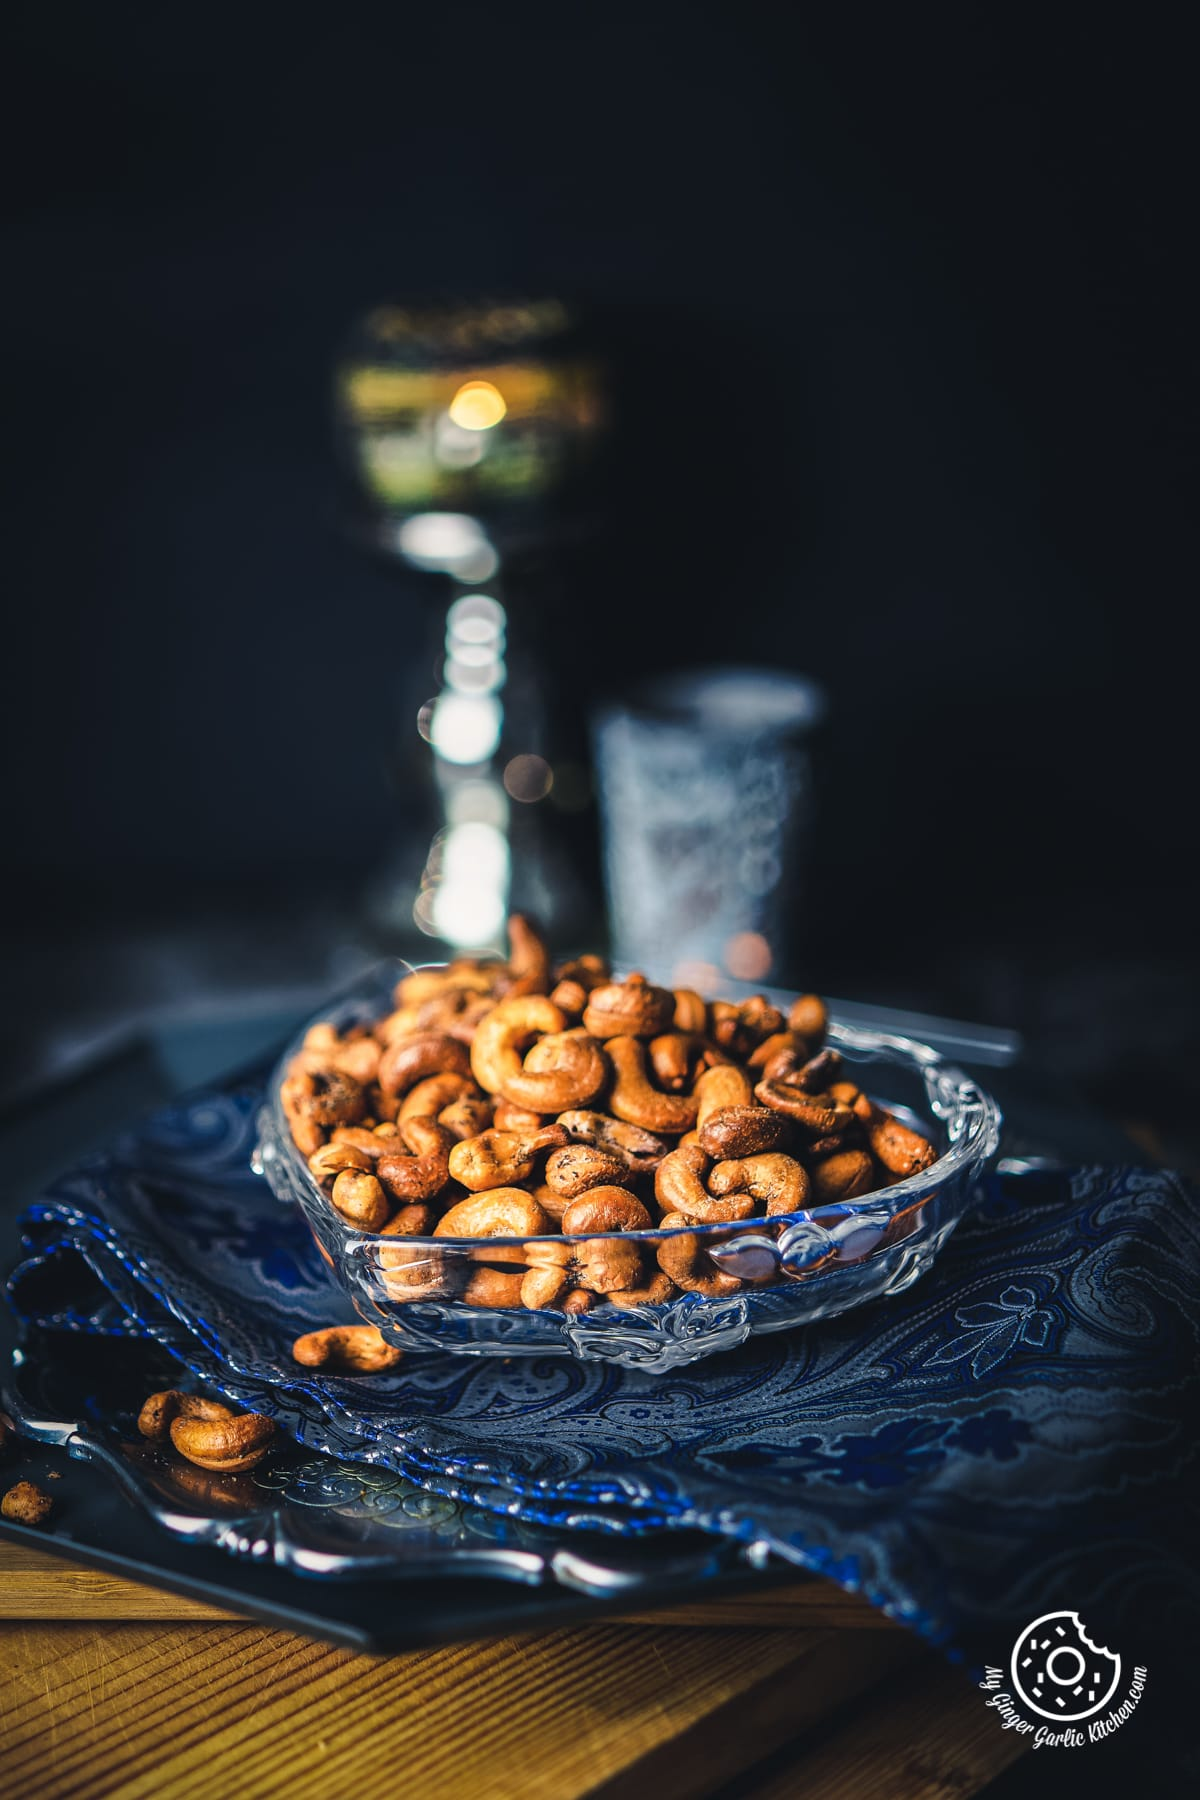 masala kaju (spicy roasted cashew nuts) served in a heart shape transparent bowl